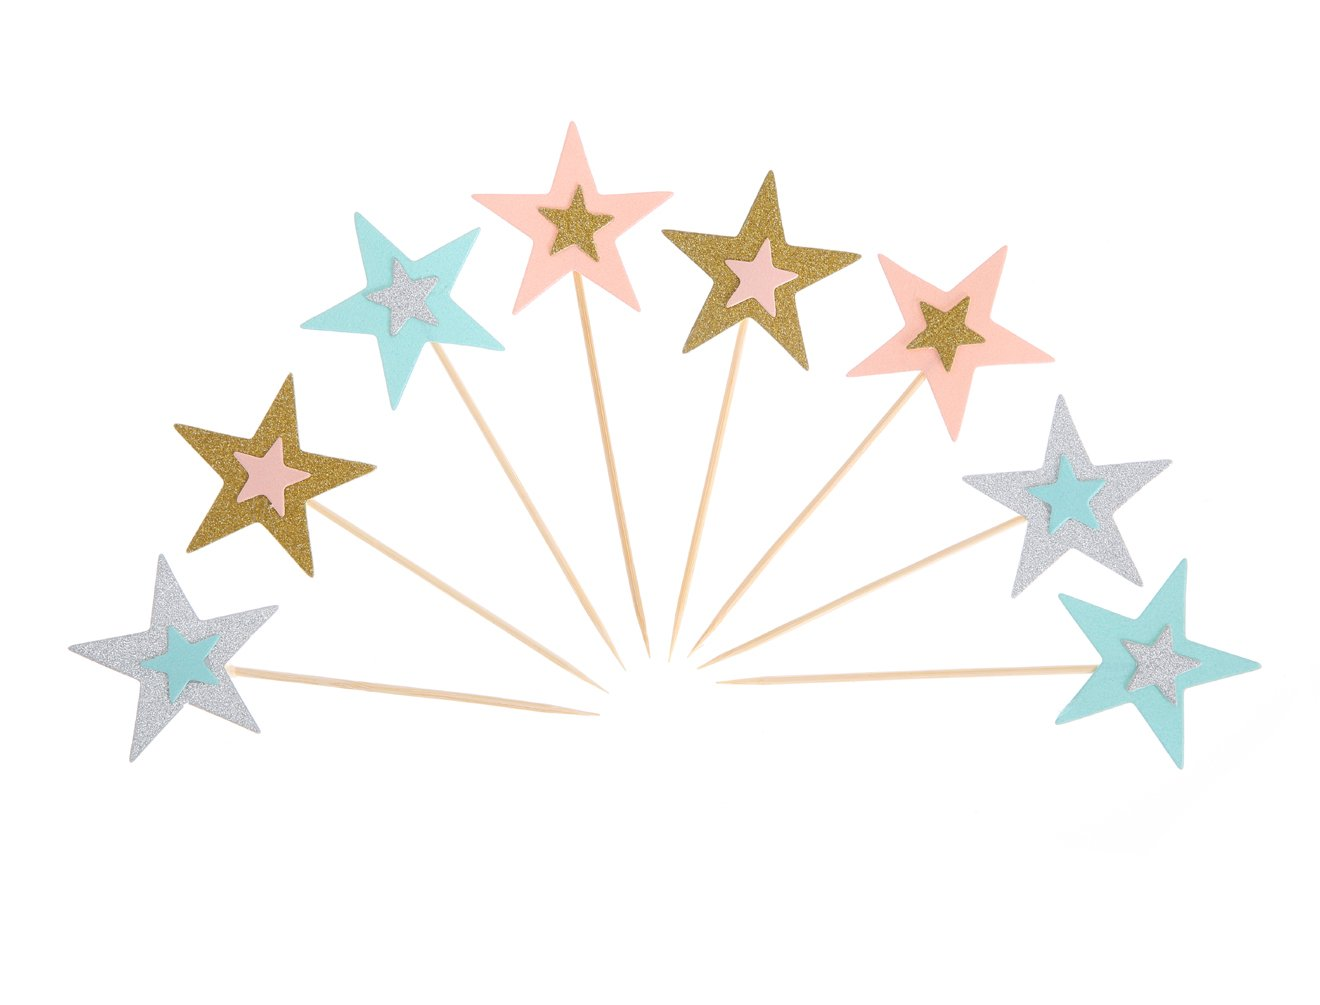 UUPP 40 Pieces Colorful Twinkle Star Cake Topper Party Cocktail Tropical Cupcake Picks for Party Decorations Supplies